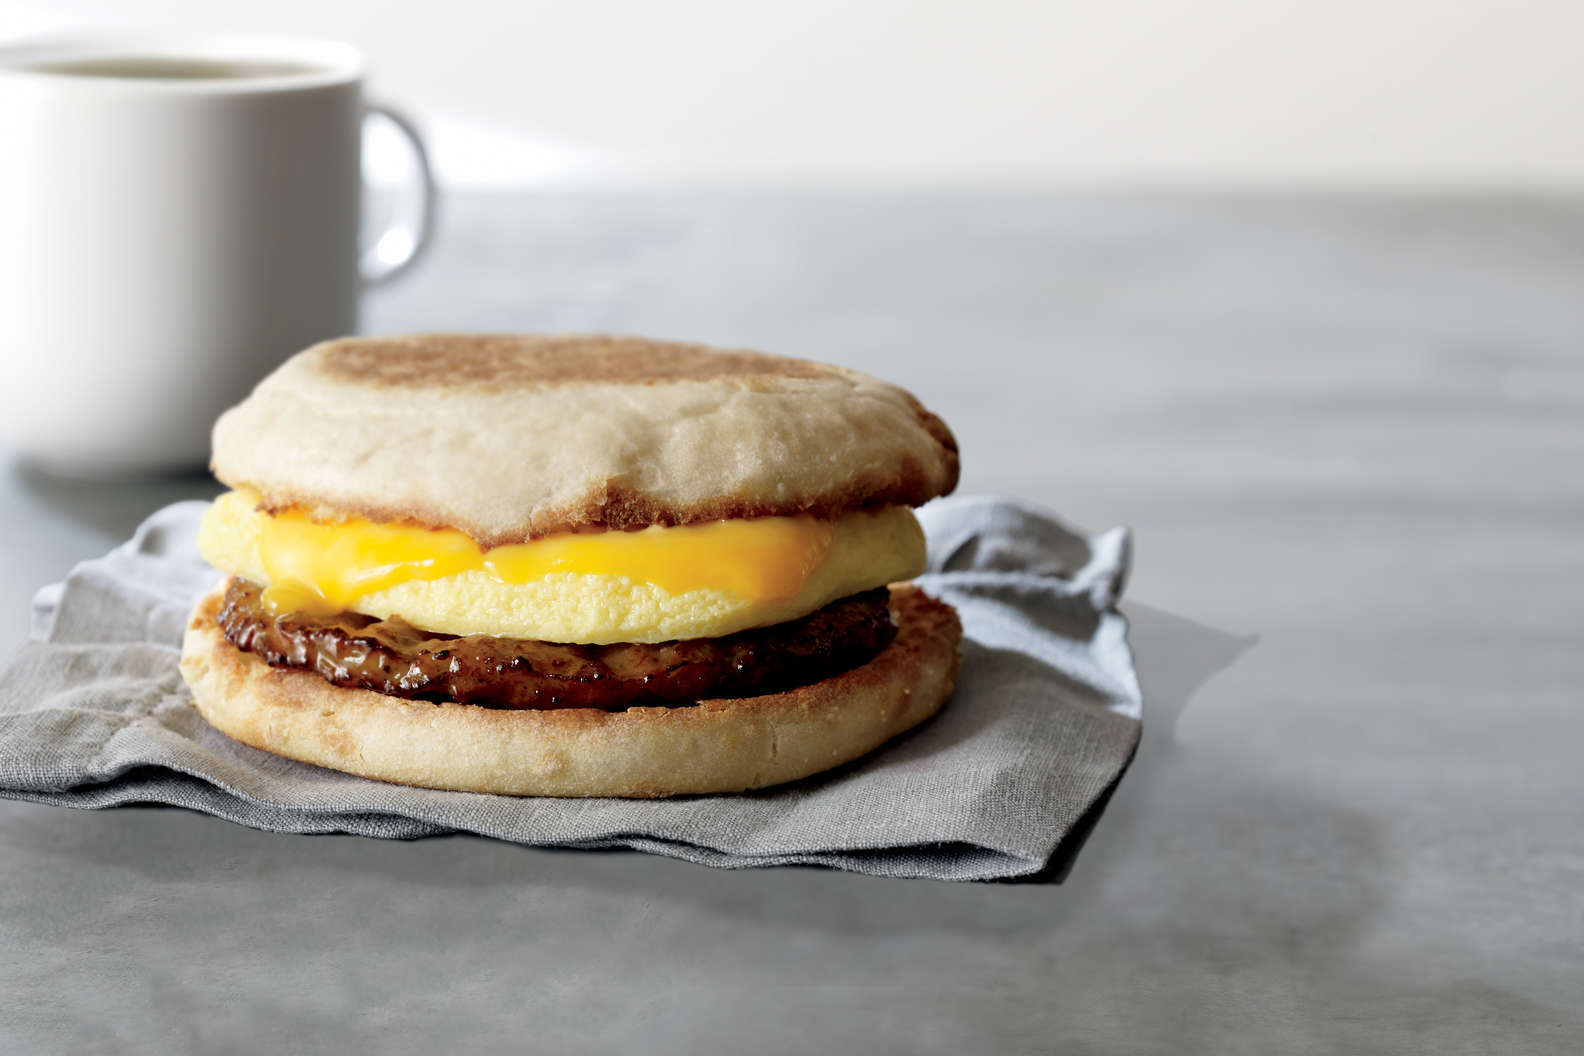 A single Starbucks location (for now) is serving this new vegan breakfast sandwich